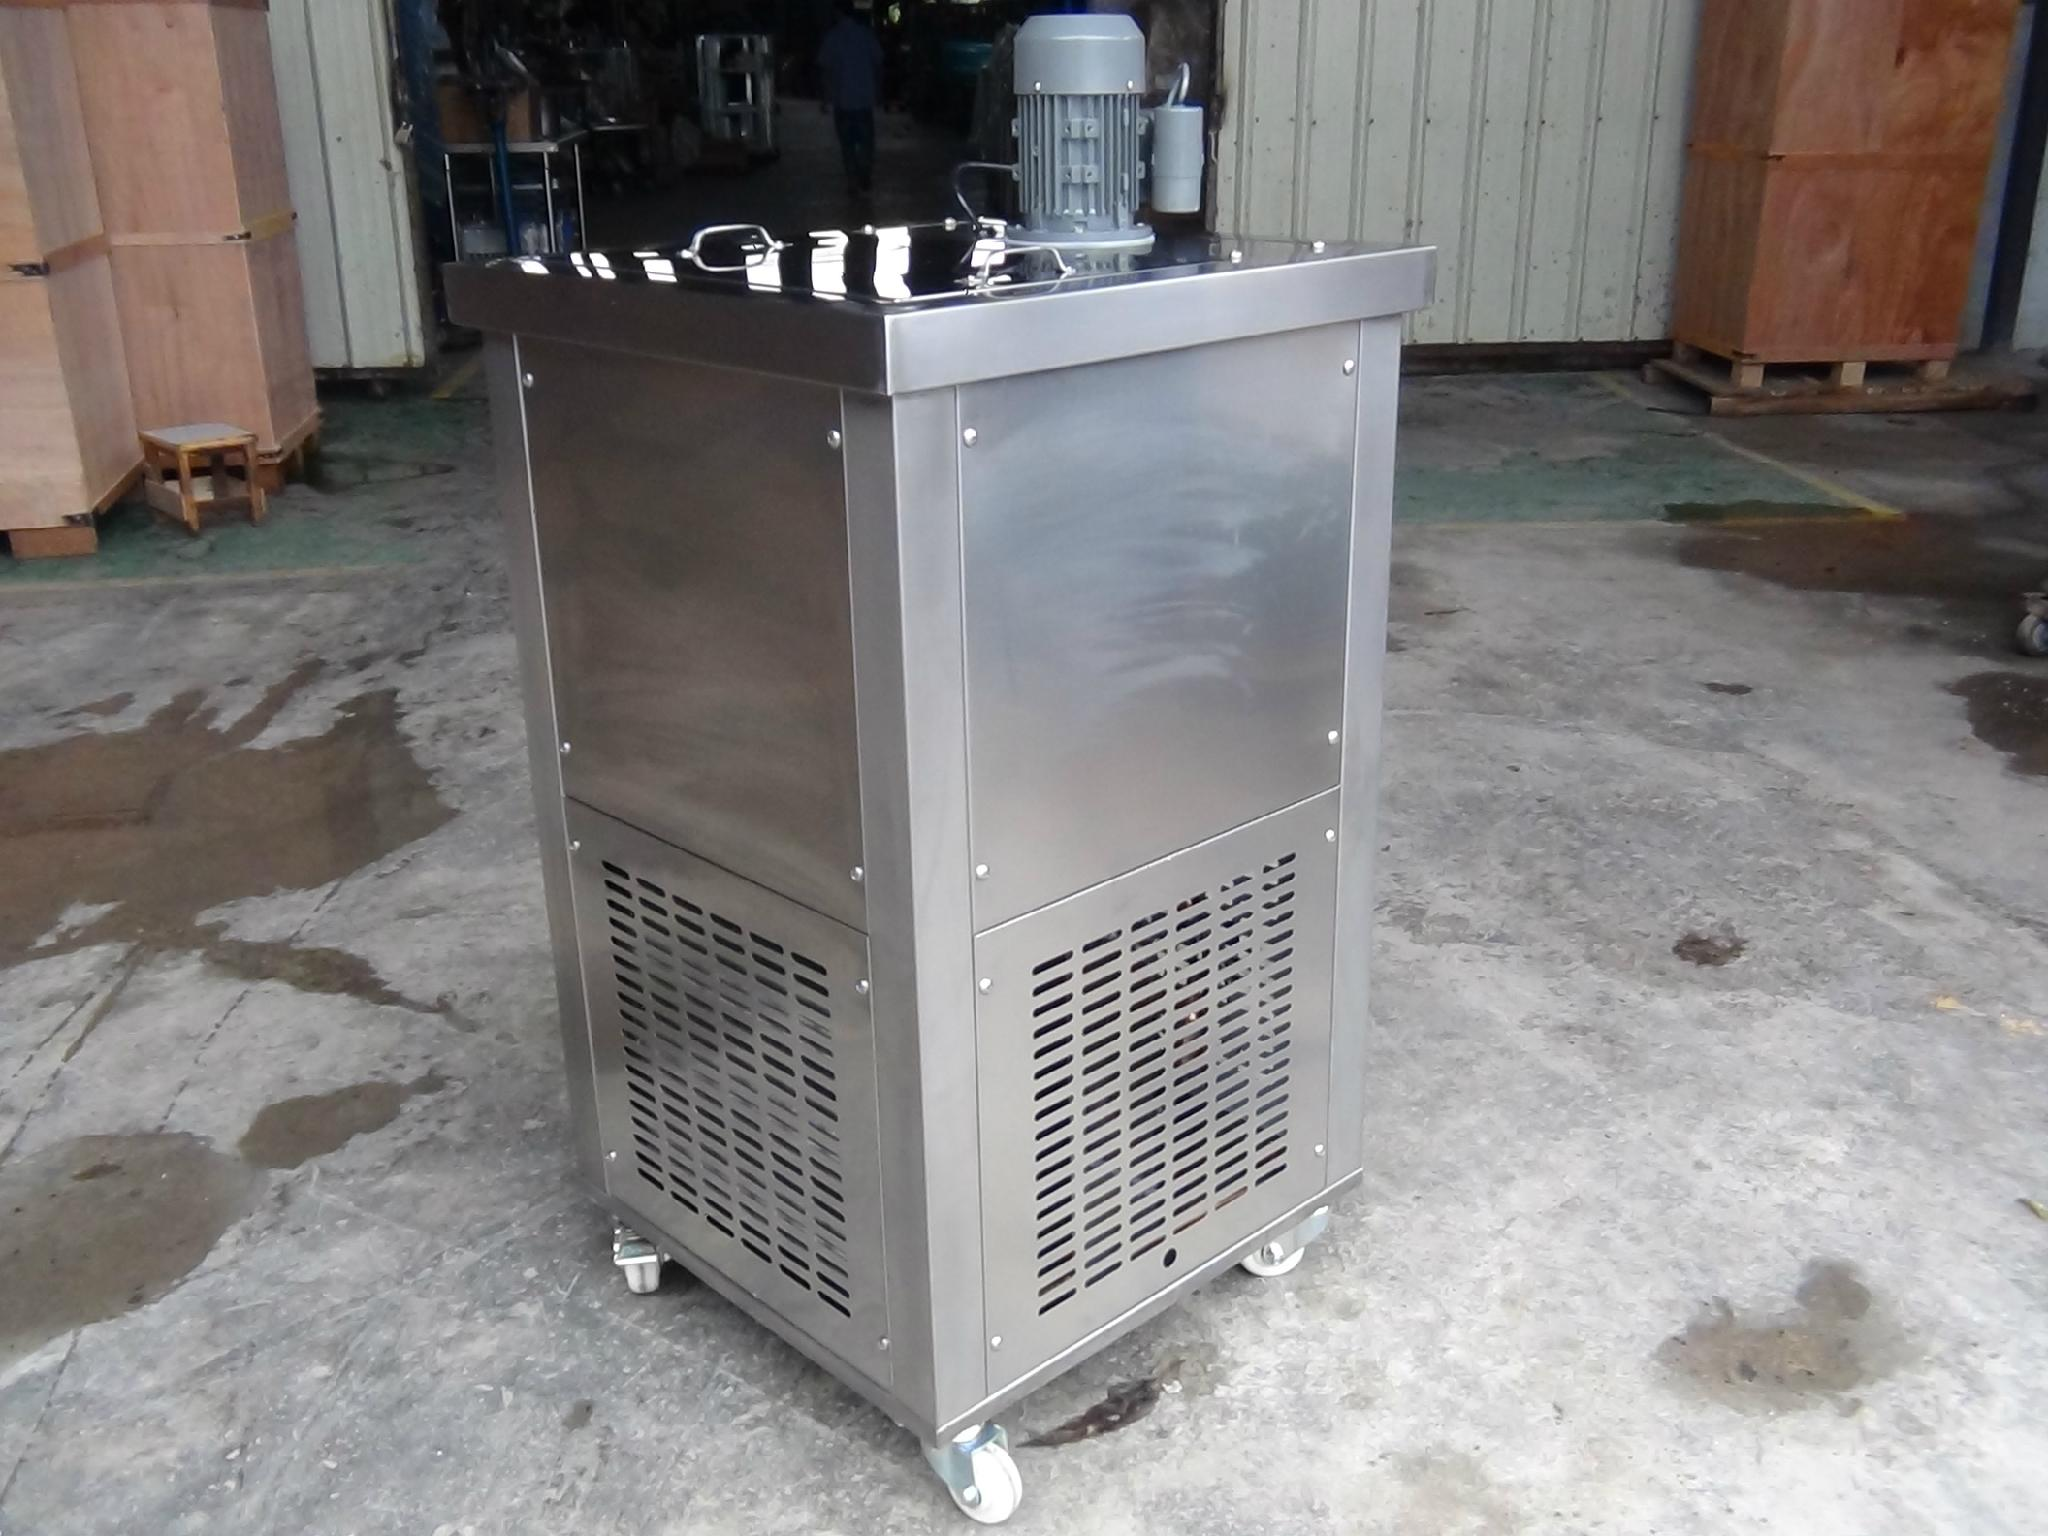 CE Tecumseh Compressor Brine Tank Ice Pop Machine Ice Lolly Machine For Sale